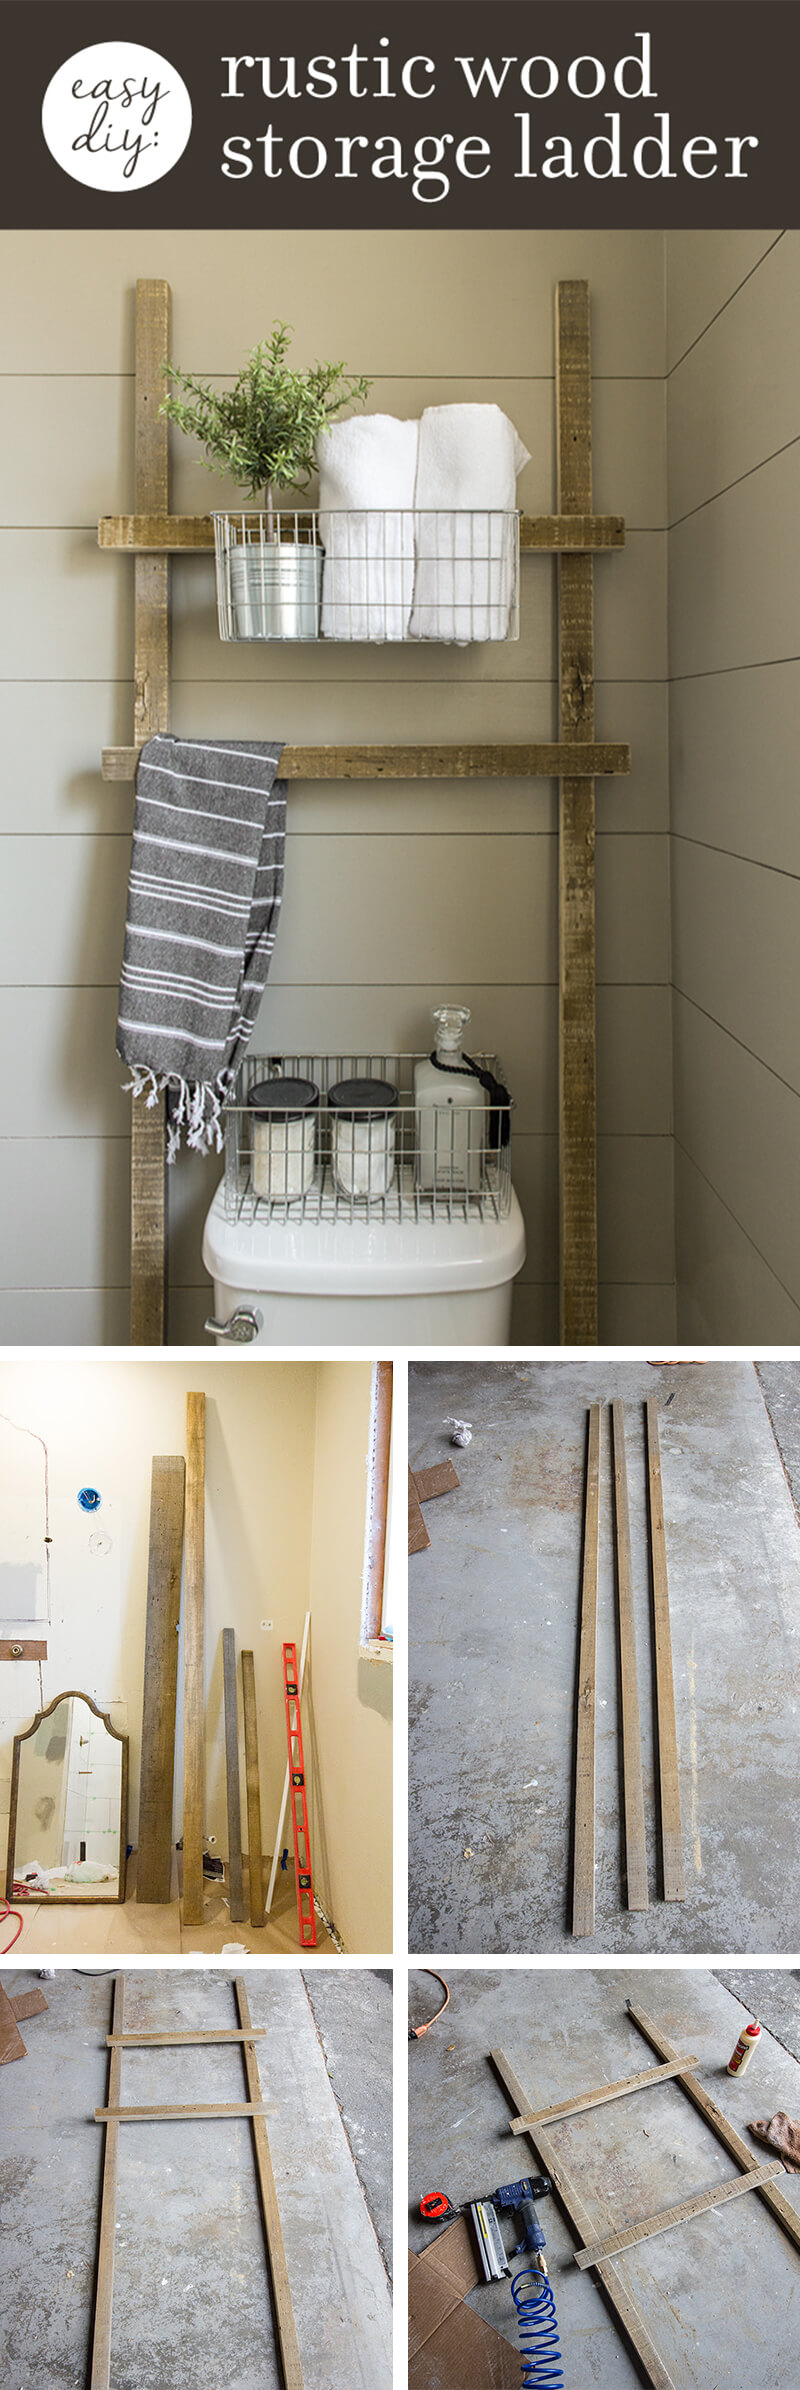 Decorative Rustic Storage Projects For Your Bathroom: 26 Best DIY Bathroom Ideas And Designs For 2018